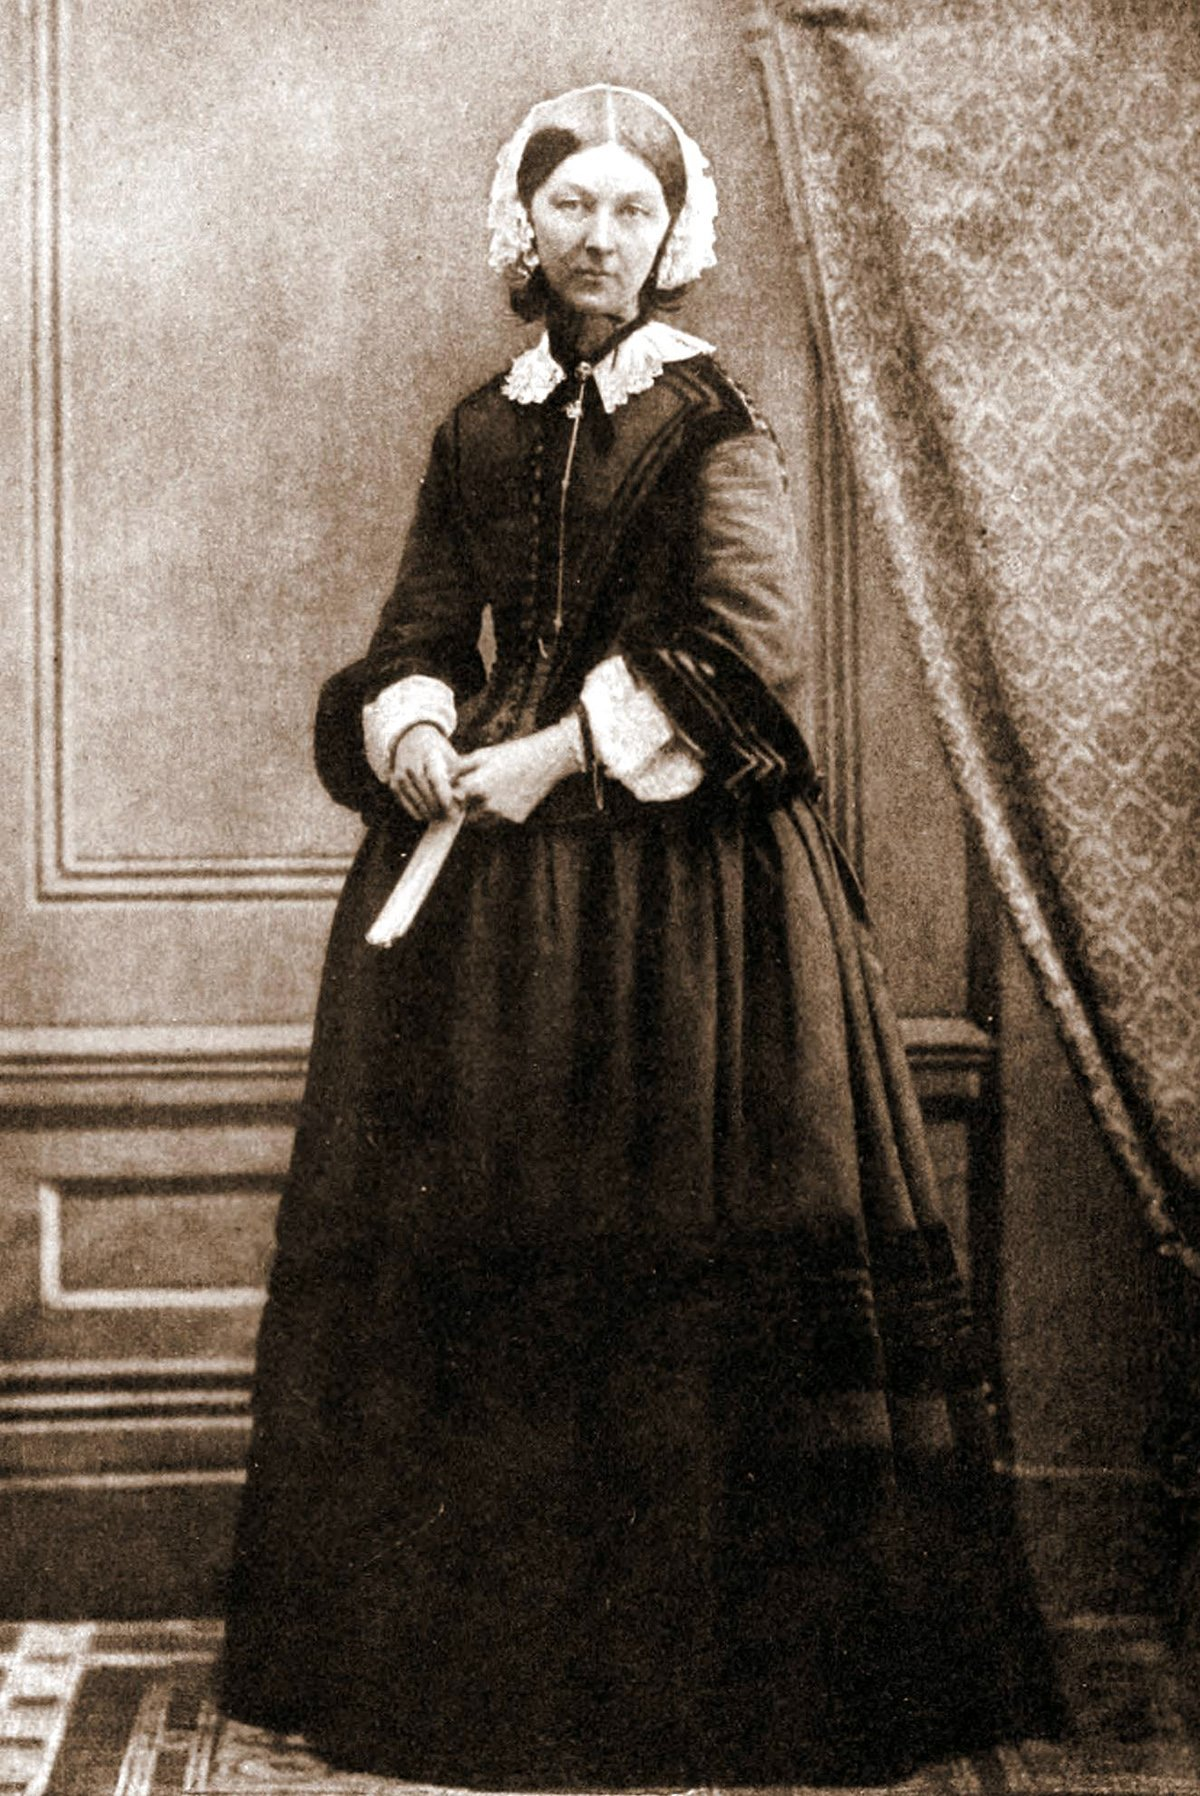 Florence Nightingale by Goodman 1858